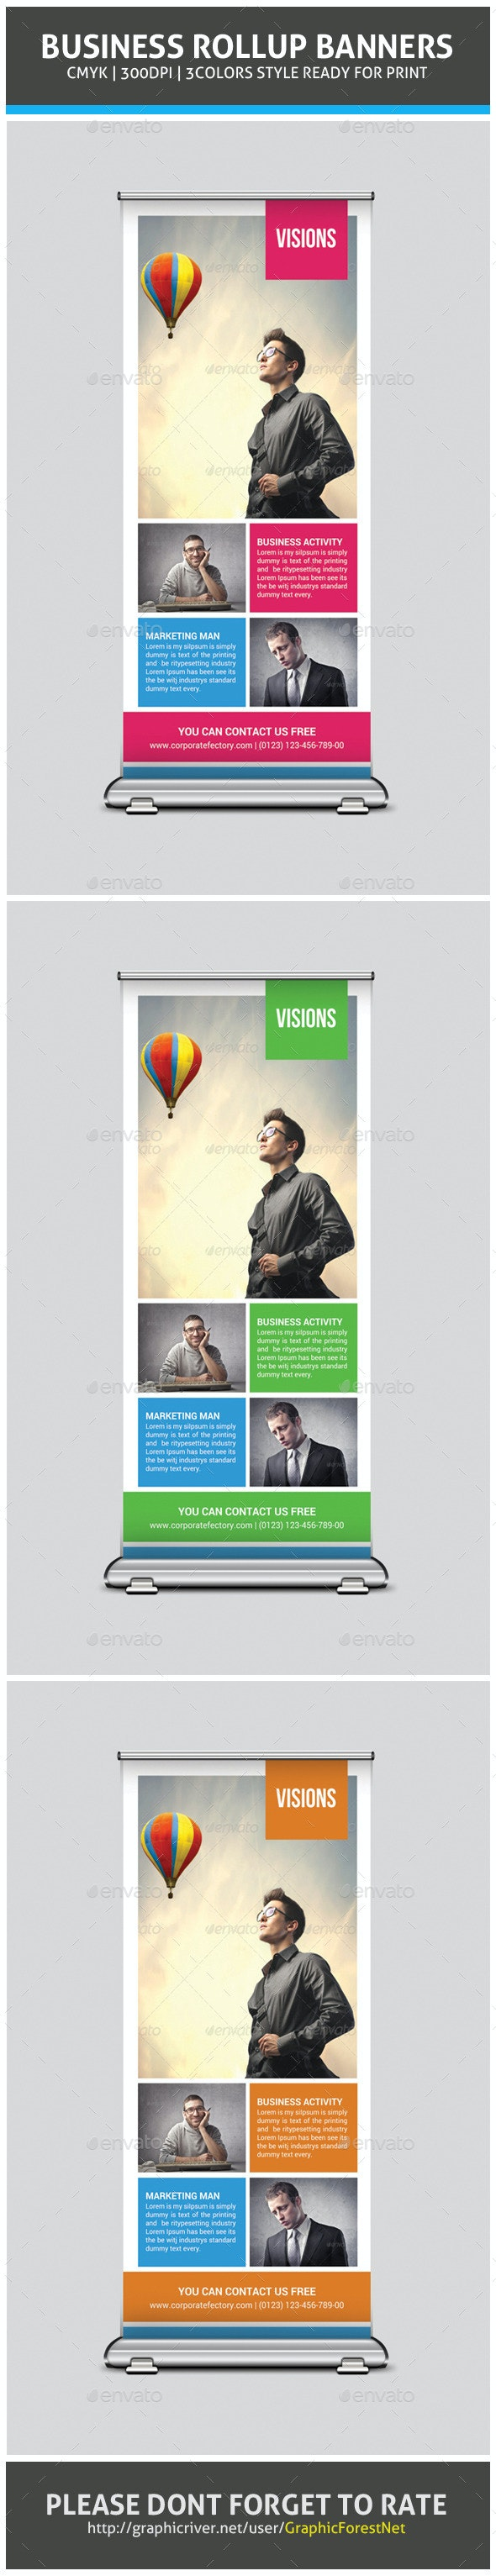 Corporate Business Rollup Banner Psd Template - Signage Print Templates